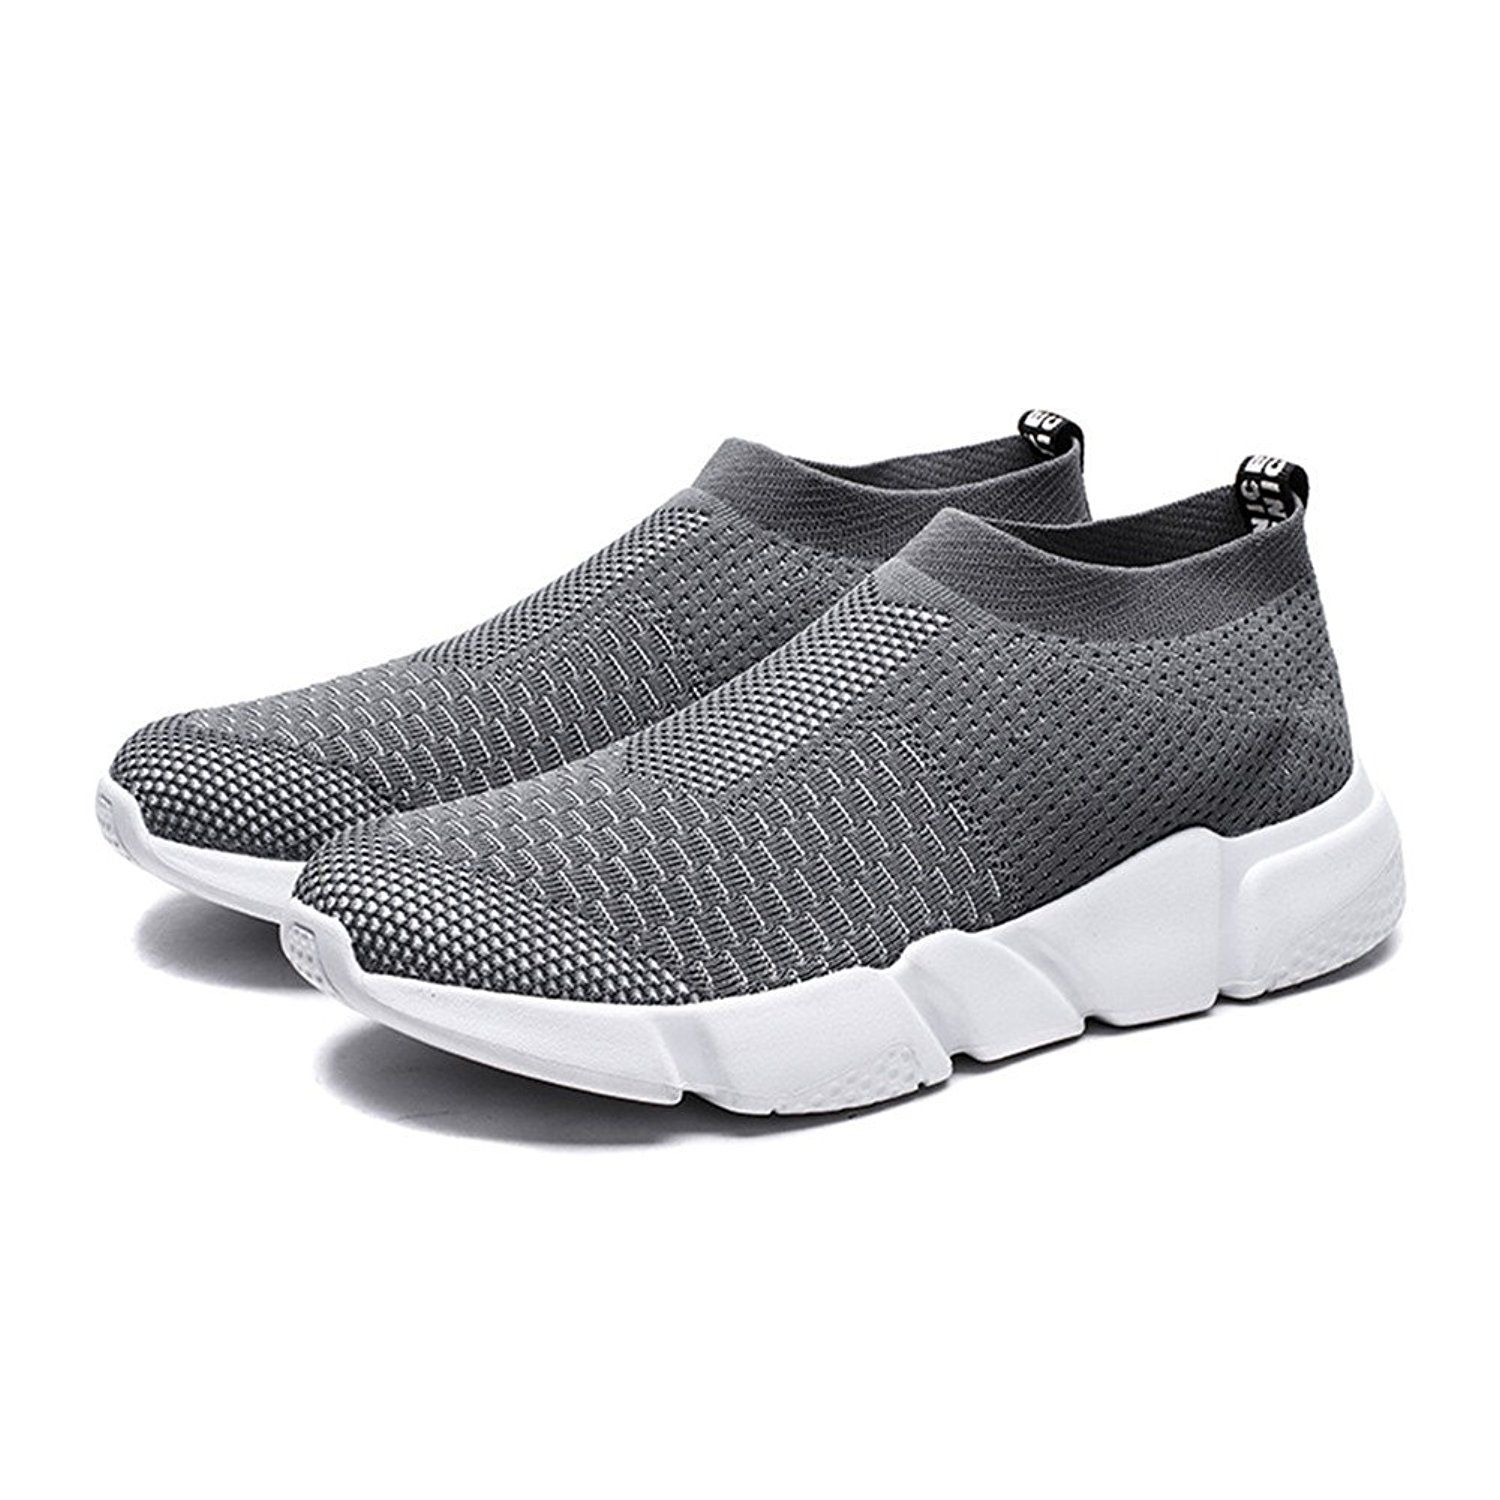 Black Power Men Casual Sport Shoes Lightweight Slip-On Sneakers Shoes